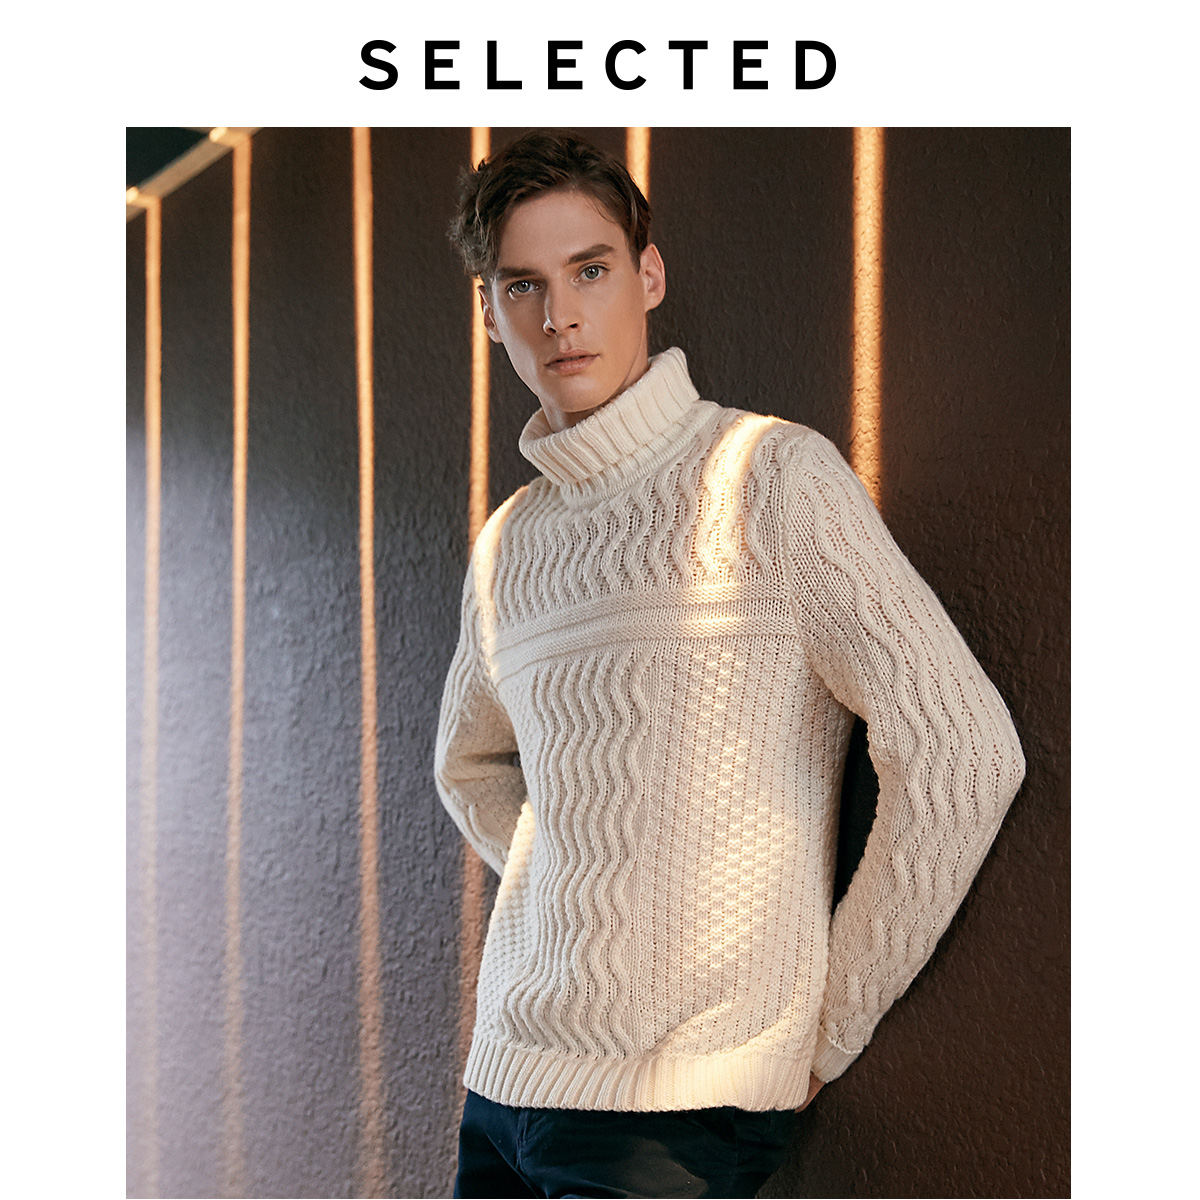 Image 2 - SELECTED Men's Autumn & Winter High necked Woolen Knitted Sweater L419424551-in Pullovers from Men's Clothing